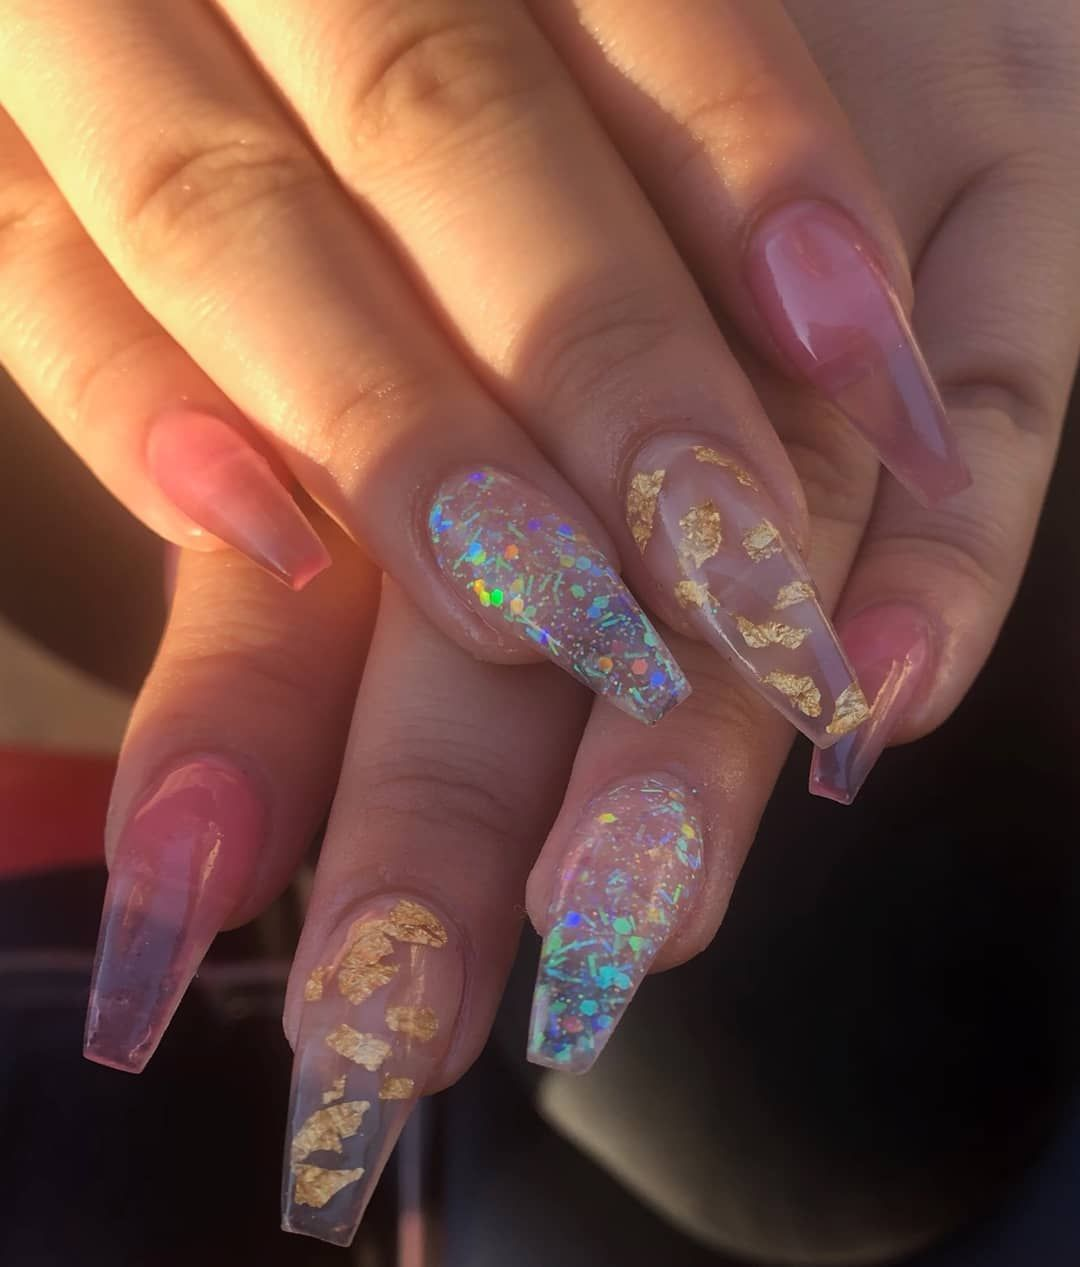 Skinny Coffin Coffinnails Longnails Brightnails Coloracrylic Acrylicnails Glamandglits Jelly Nails Gorgeous Nails Encapsulated Nails